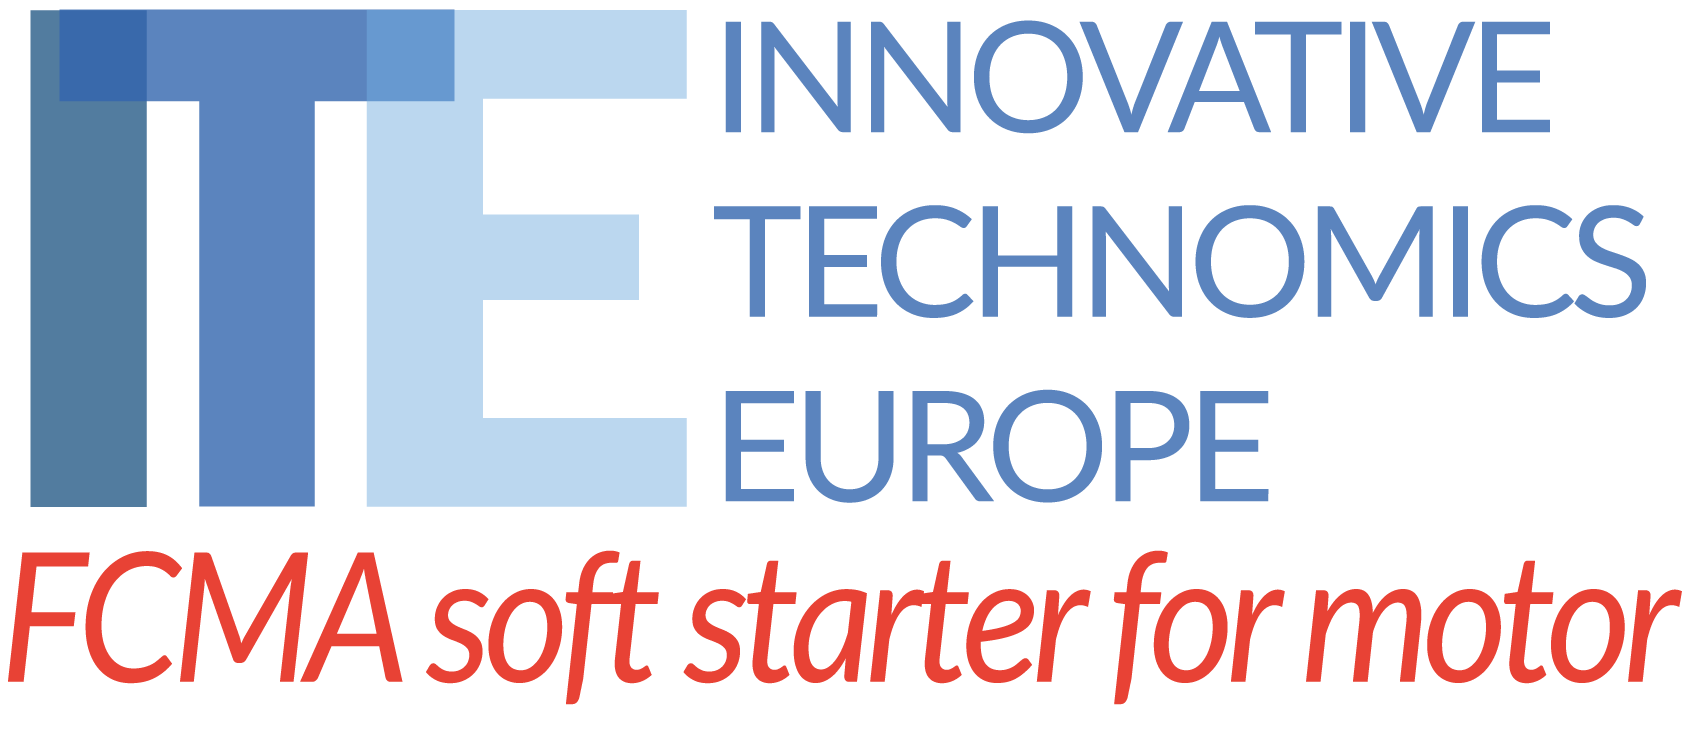 our company innovative technomics europe our company